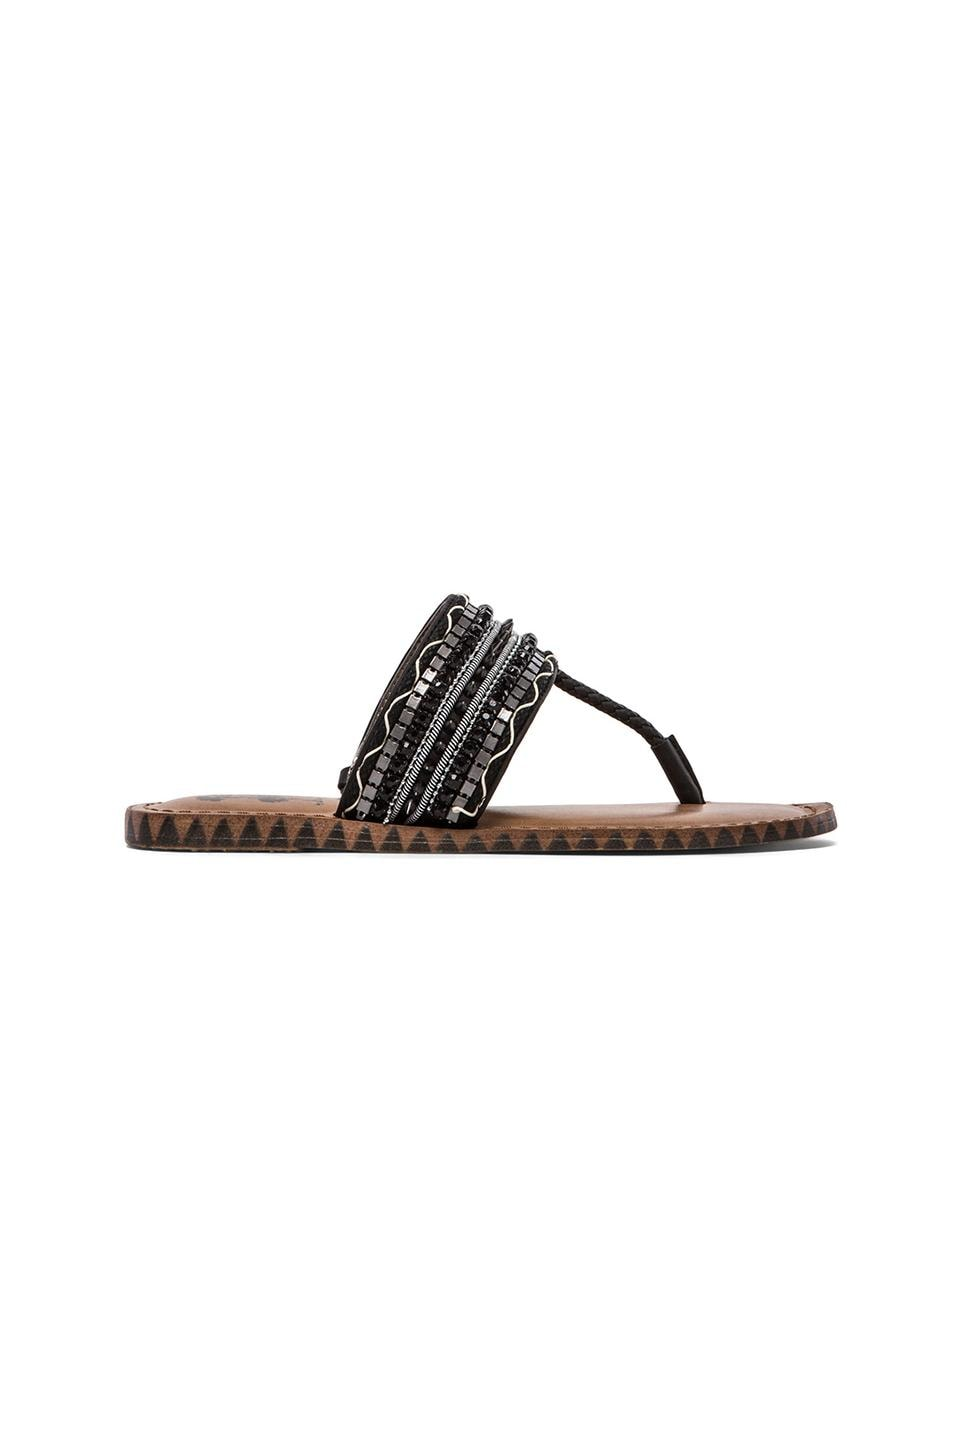 Circus by Sam Edelman Mirielle Sandal in Black